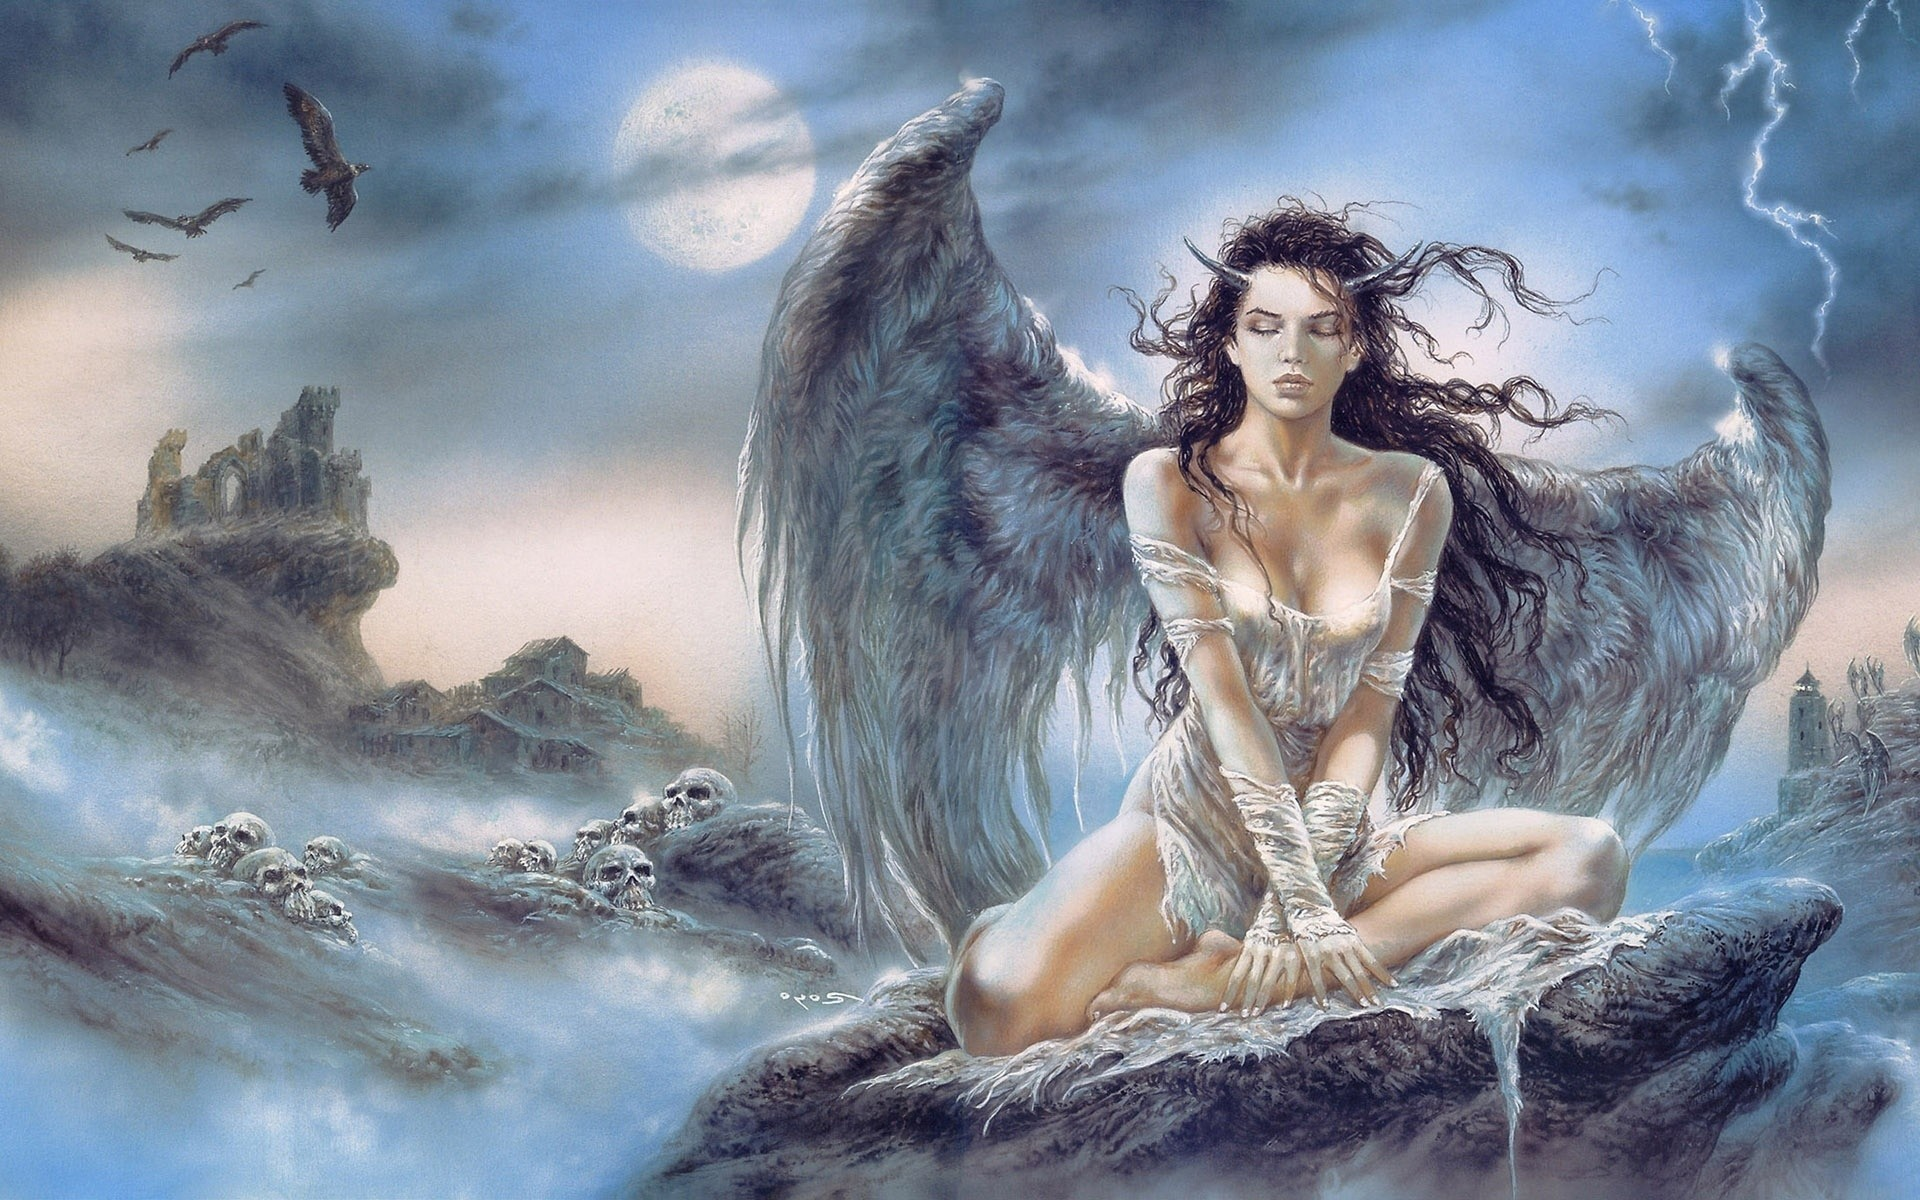 Res: 1920x1200, Luis Royo images Luis Royo Lady HD wallpaper and background photos